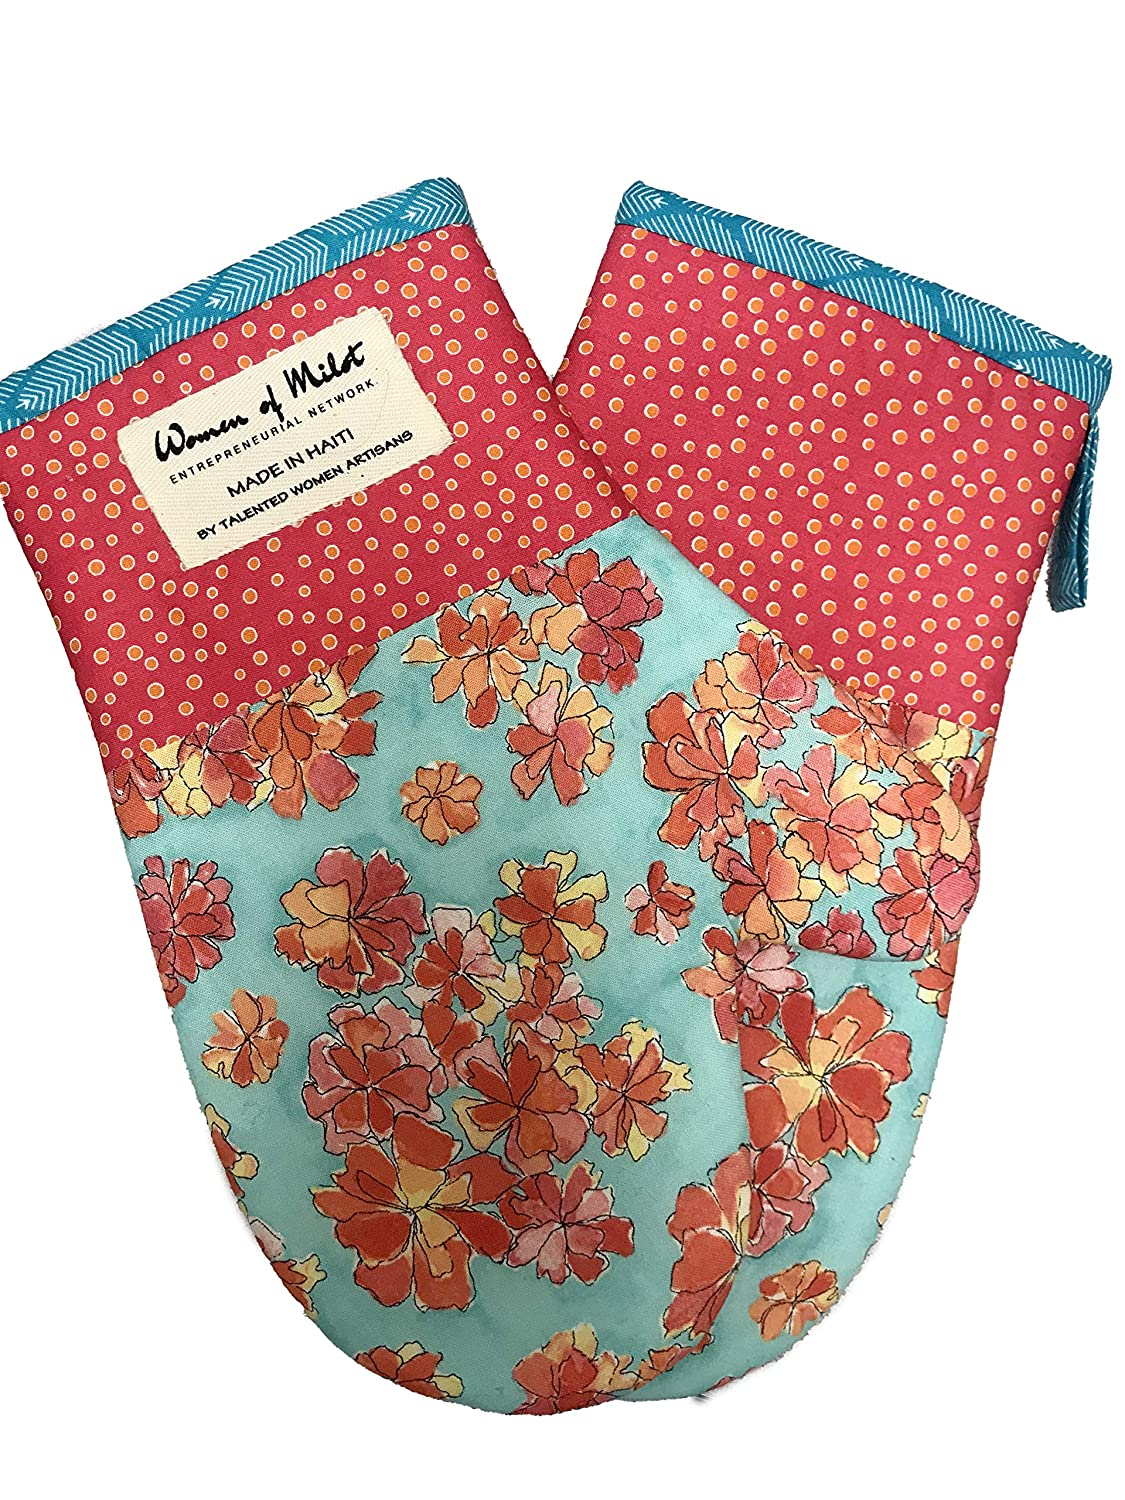 Griselda Oven Mitt Set of 2 - Teal and Orange Color Tones with Floral Patterns - Hand Made Fair Trade from Haiti